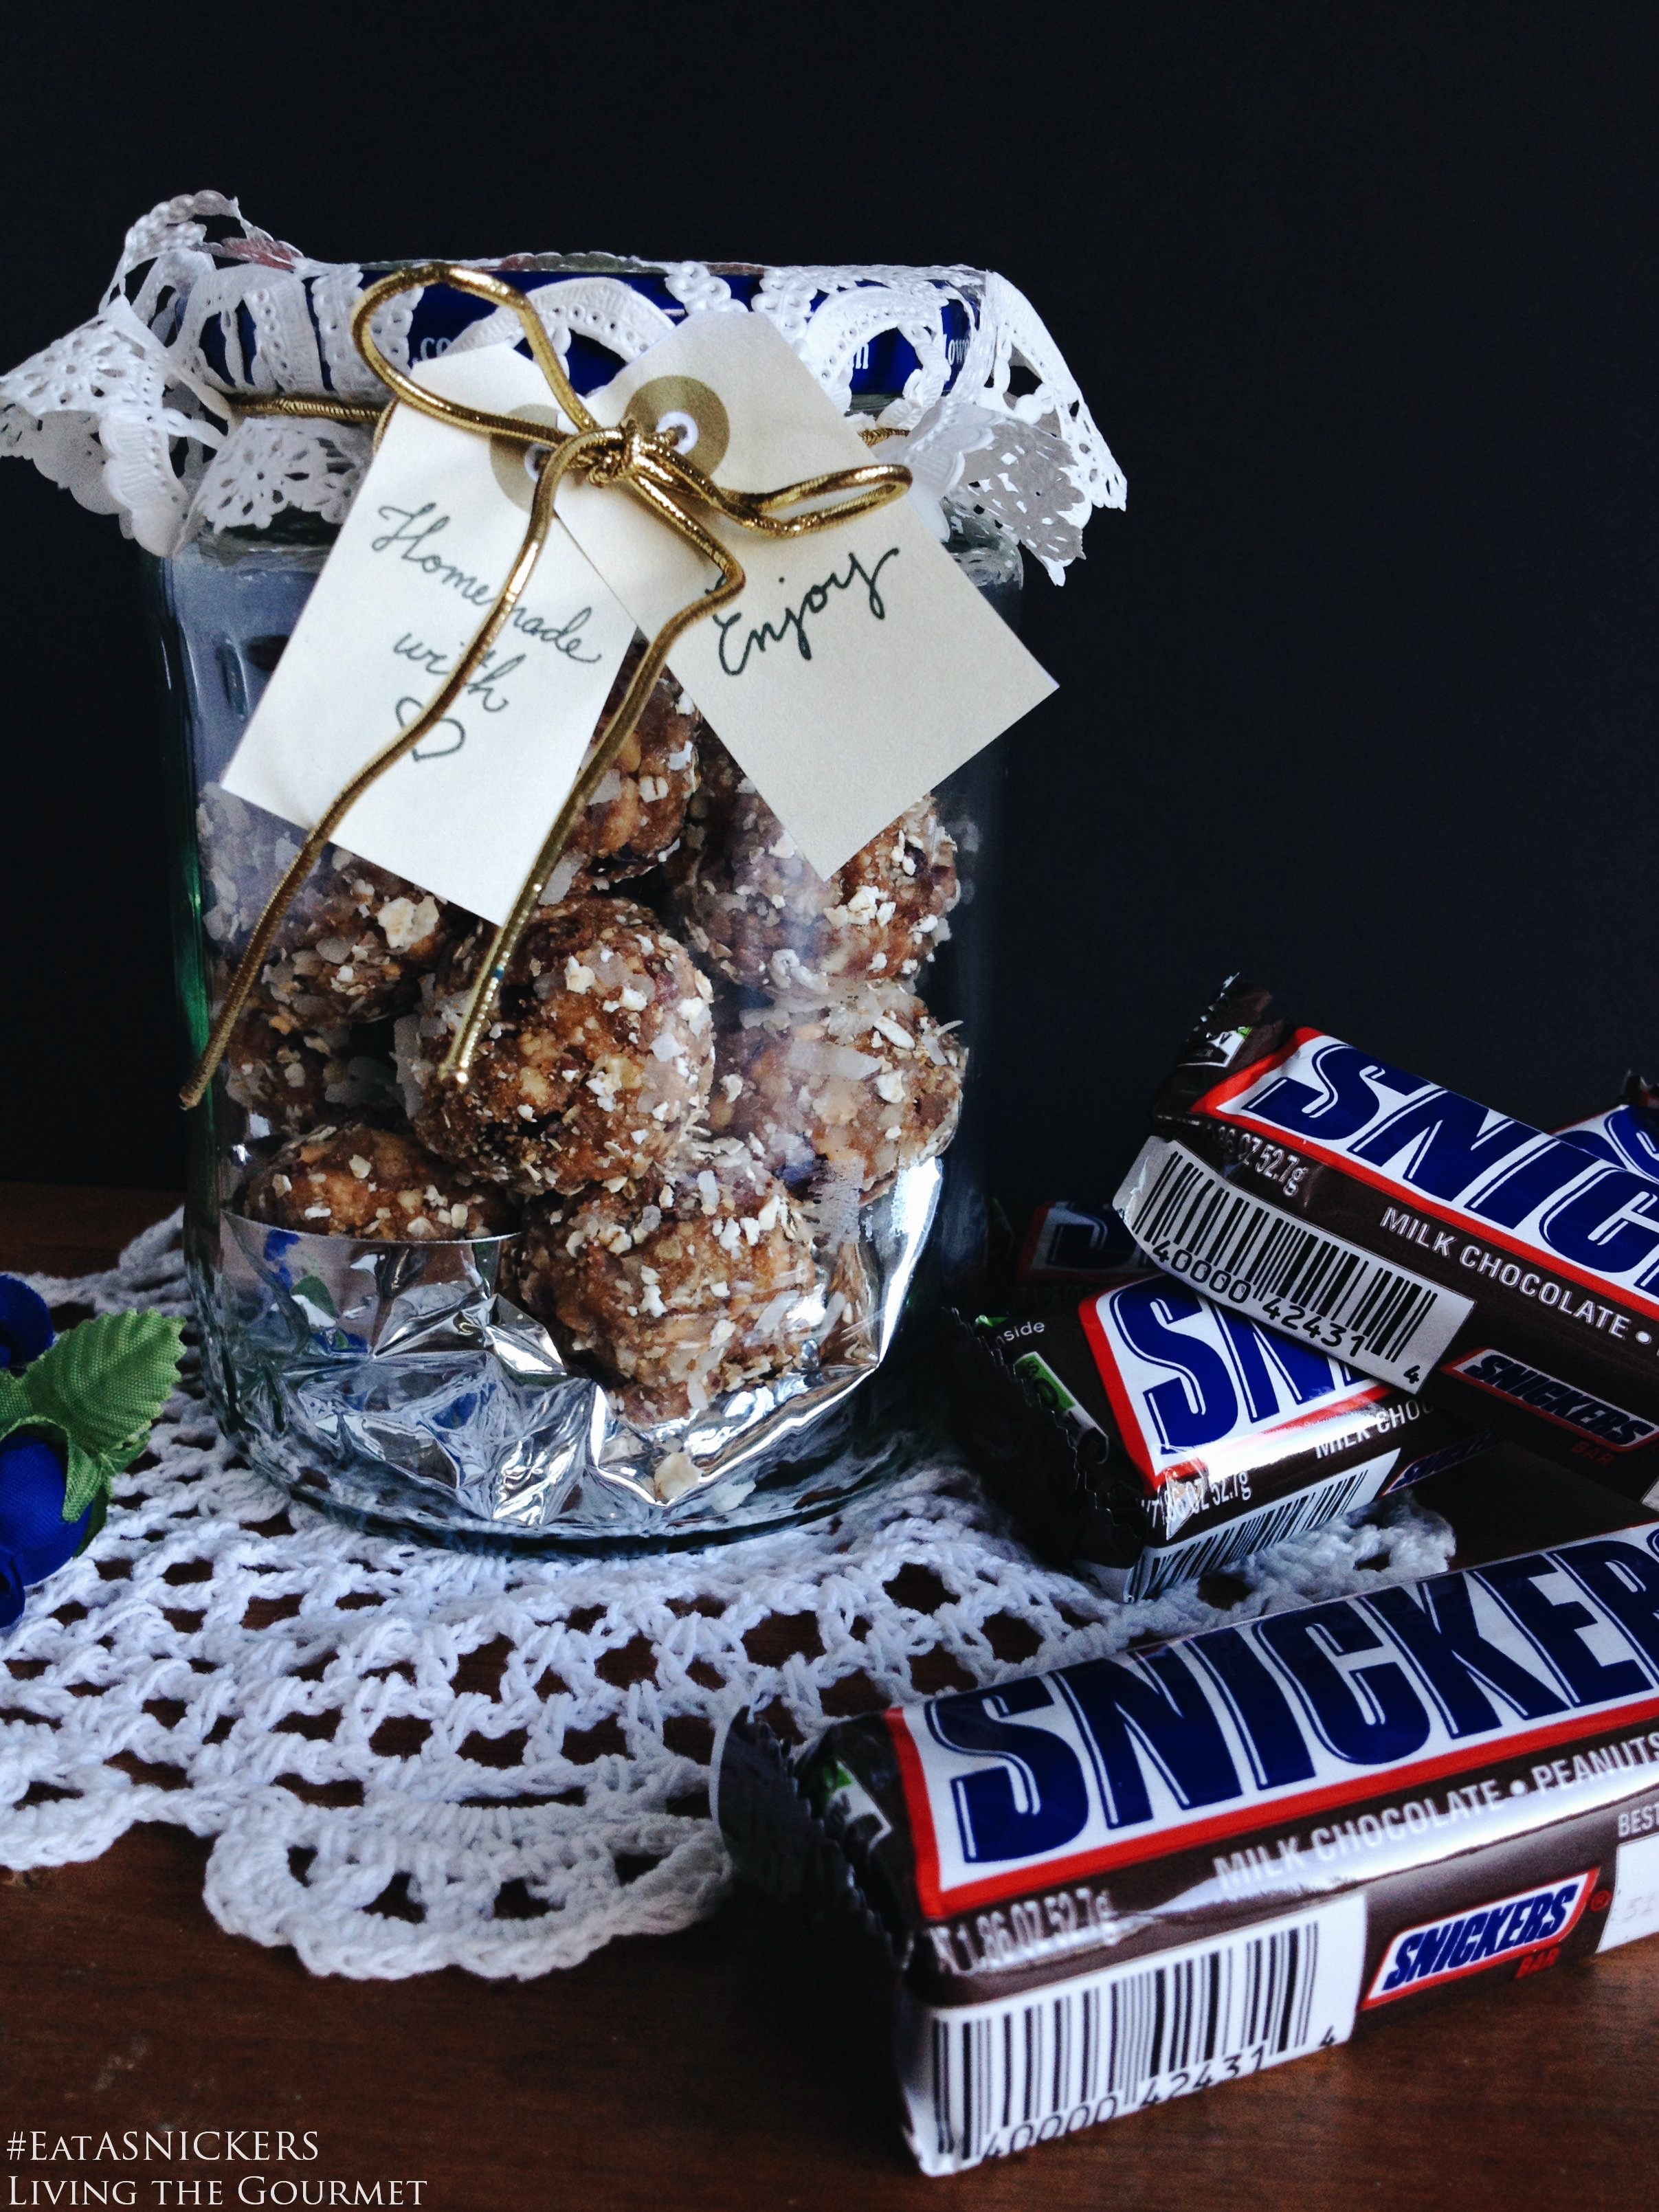 Living the Gourmet: Candy Bar Energy Bites (The Hunger Gifts) #EatSNICKERS AD